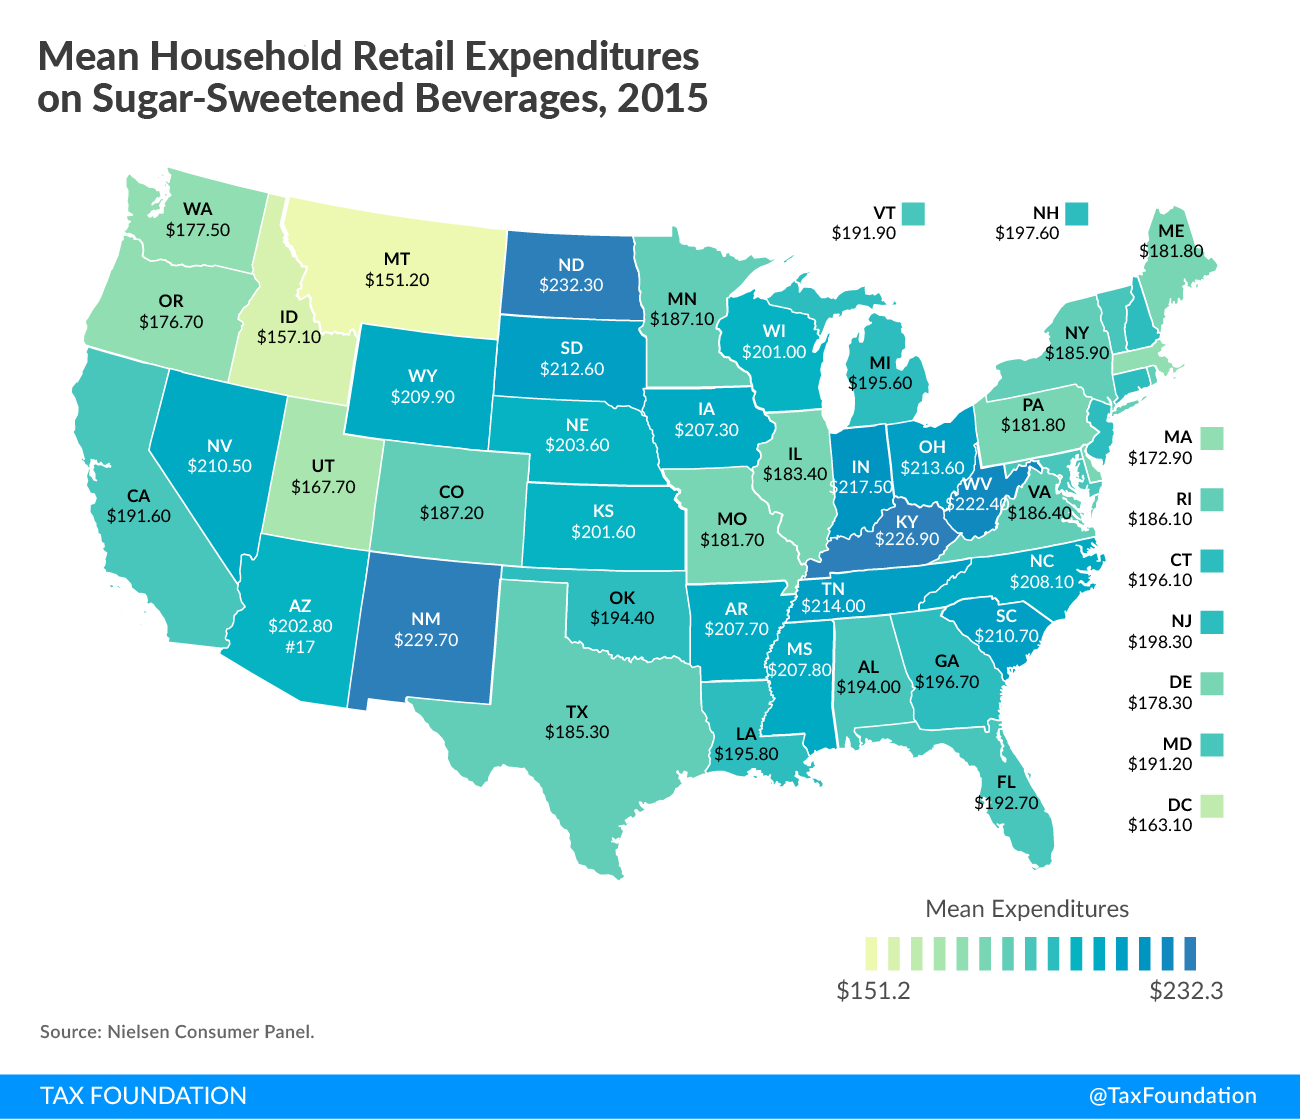 Mean Household Retail Expenditures on Sugar-Sweetened Beverages Map